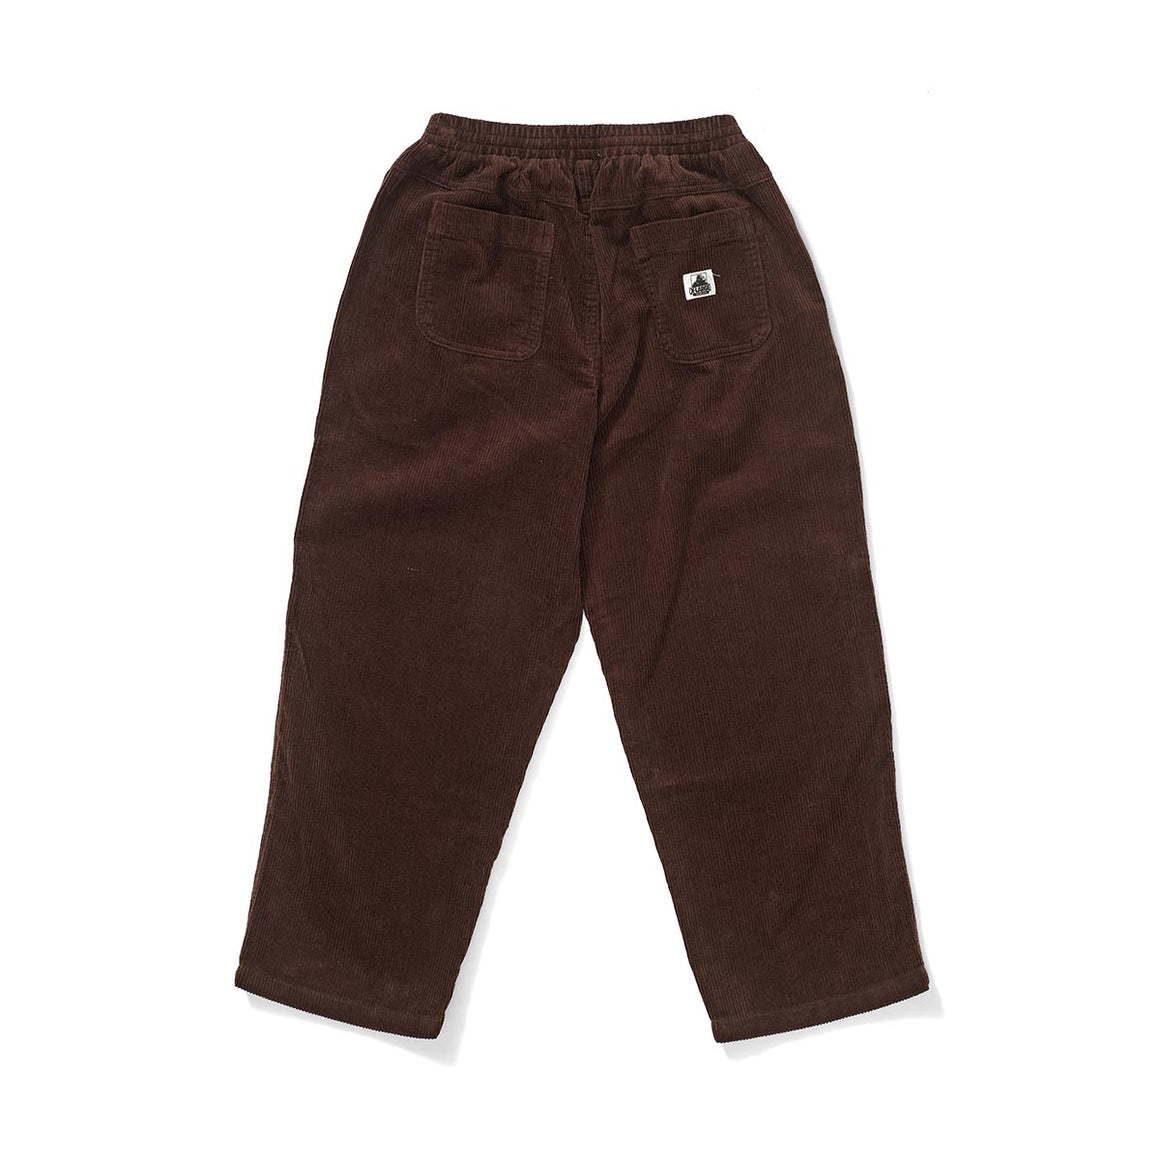 Cord 91 Pant, Bottoms  - XLarge Brand